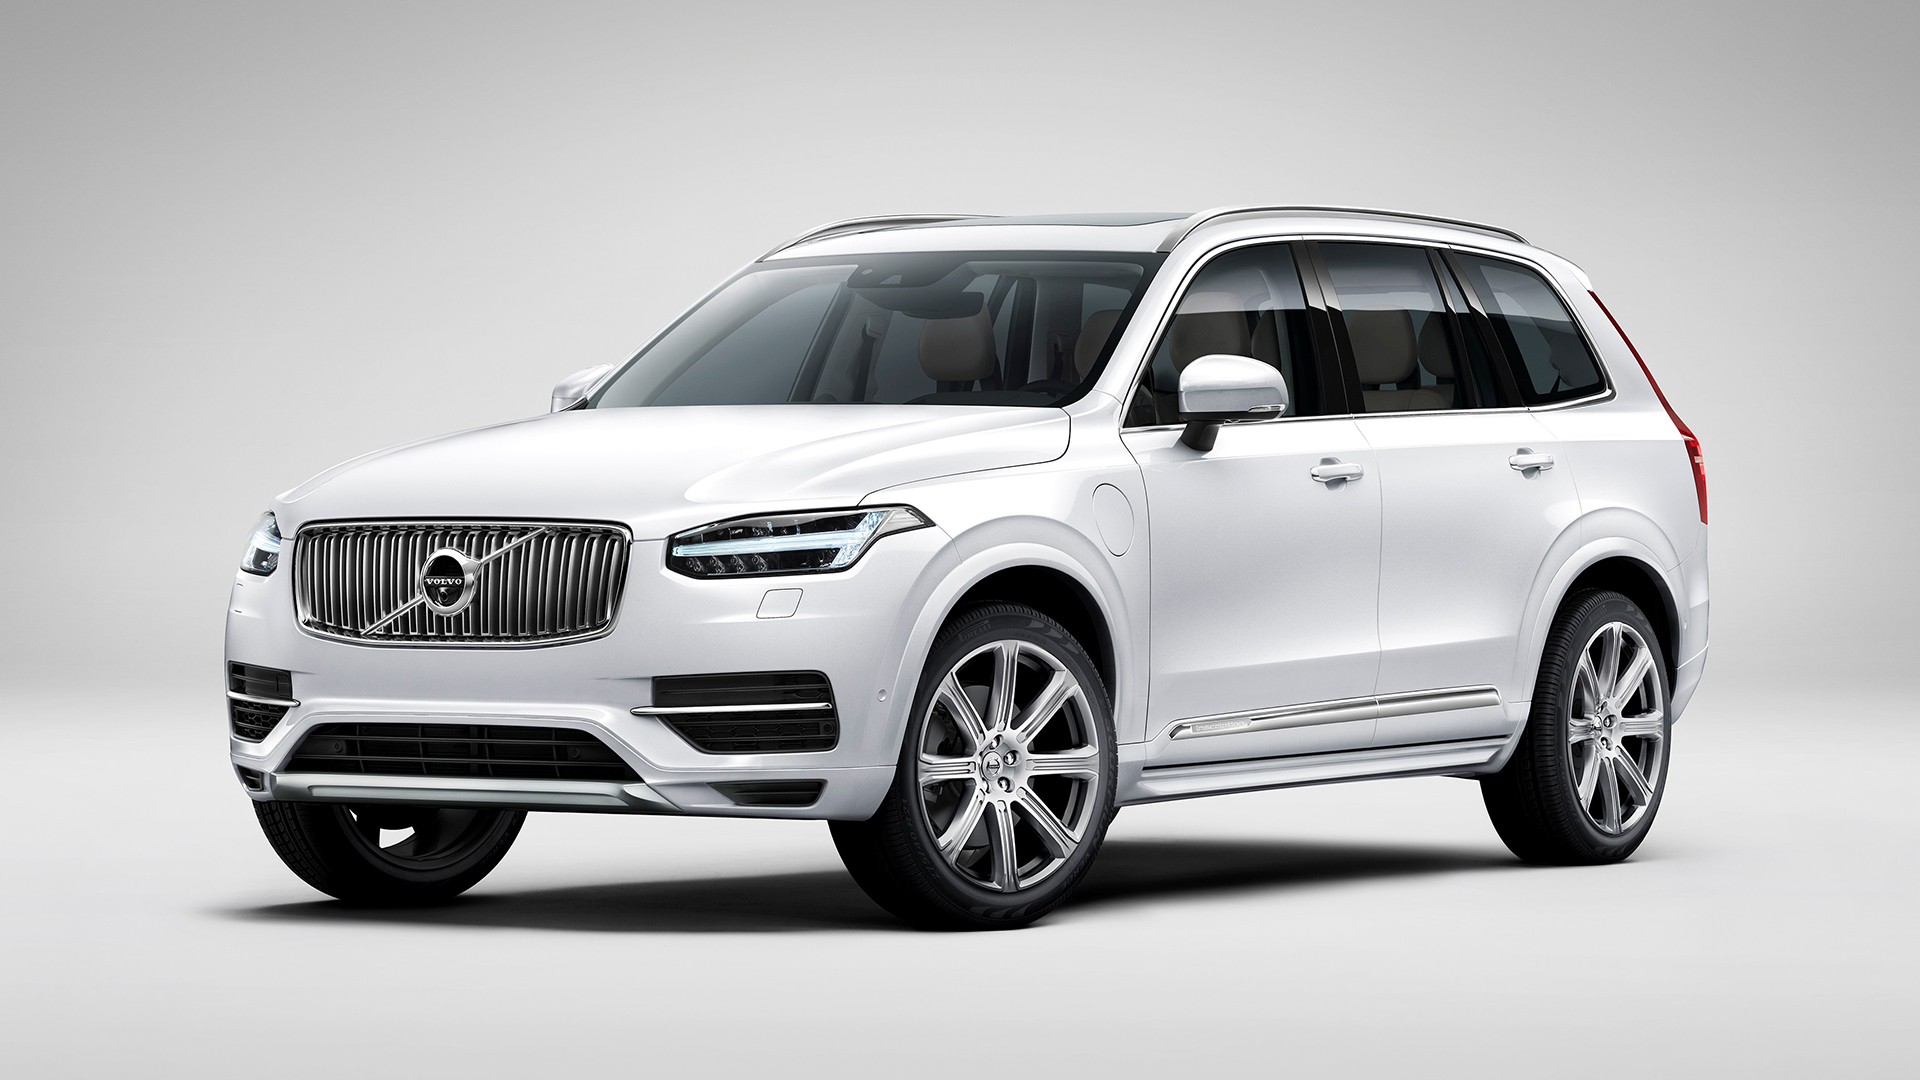 Volvo Xc90 2018 Price Mileage Reviews Specification Gallery